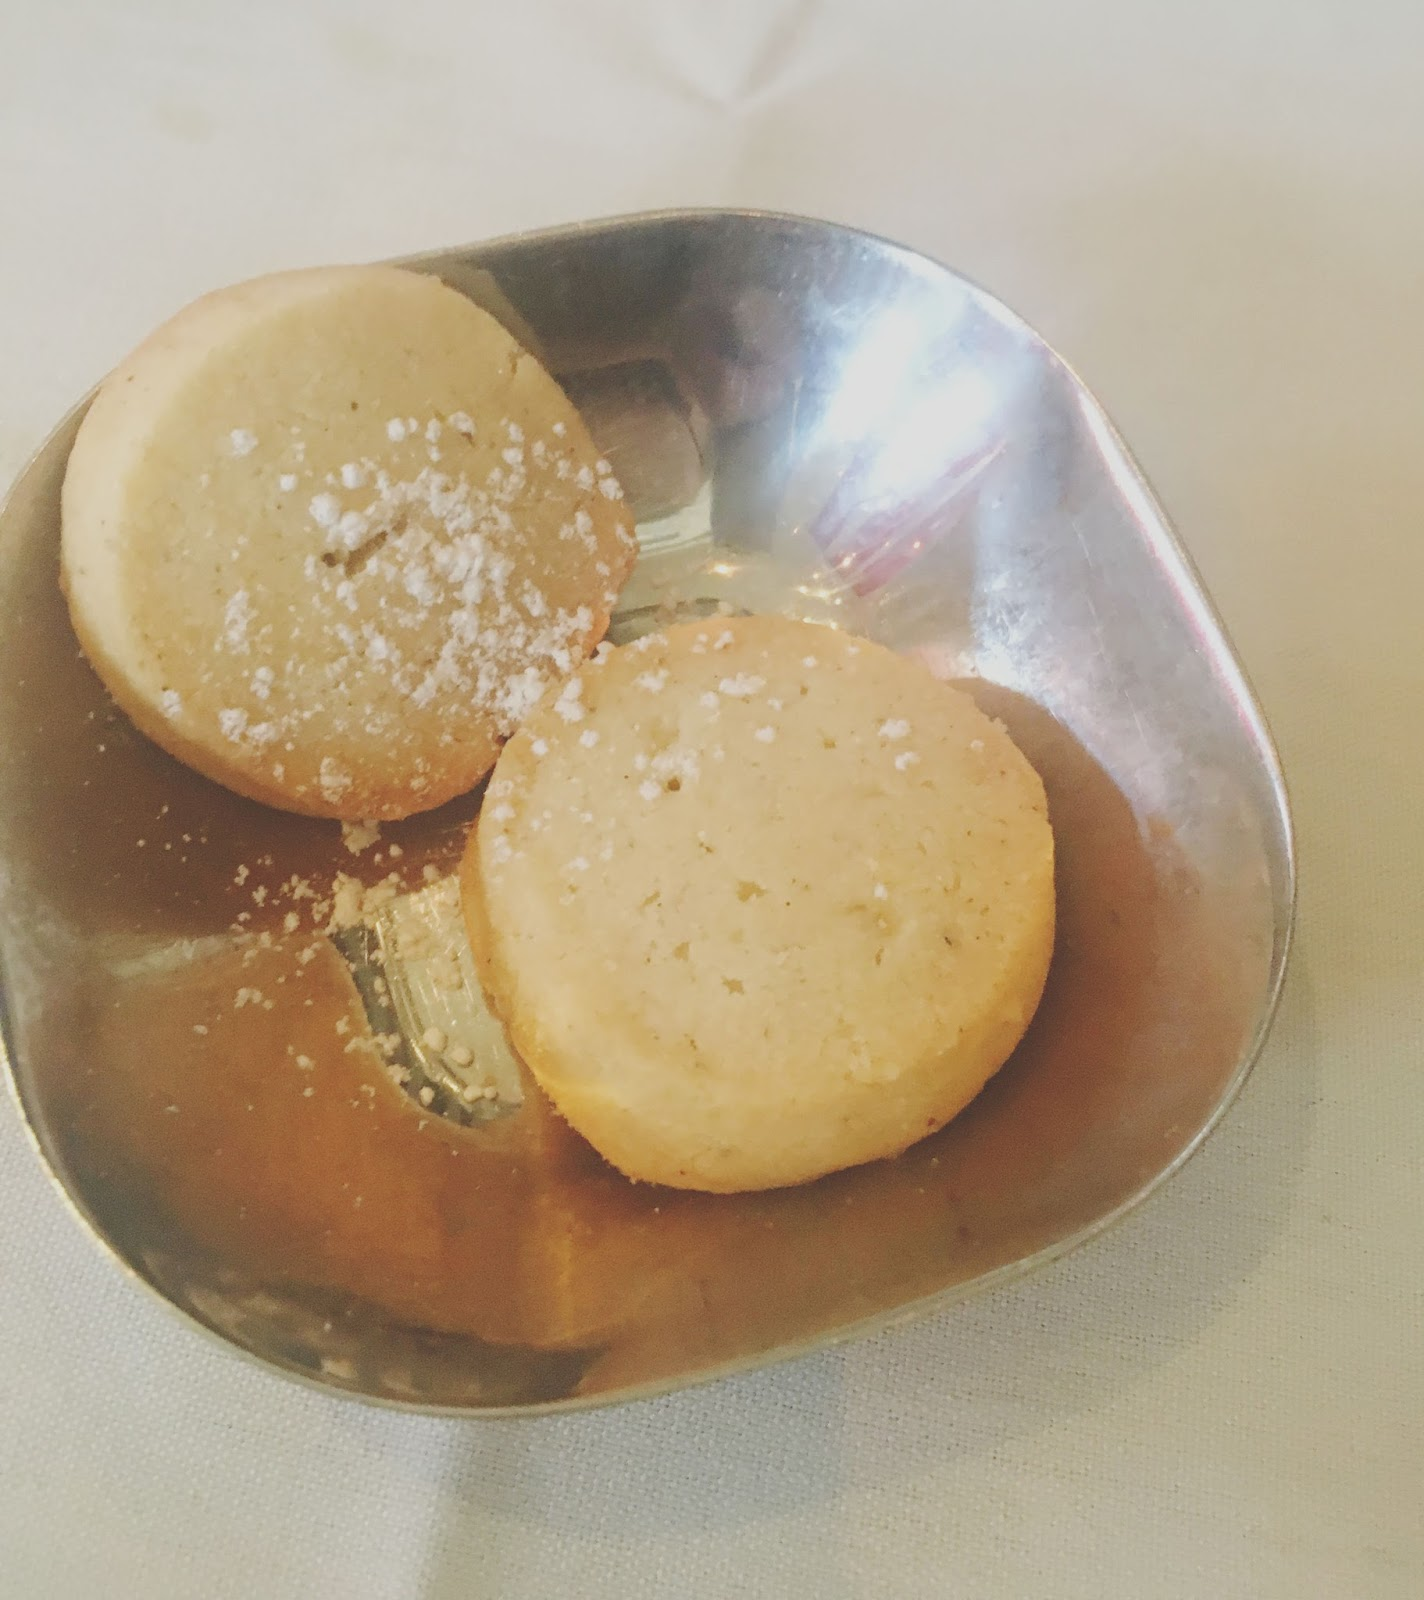 cookies at Indika - an Indian restaurant in Houston, Texas